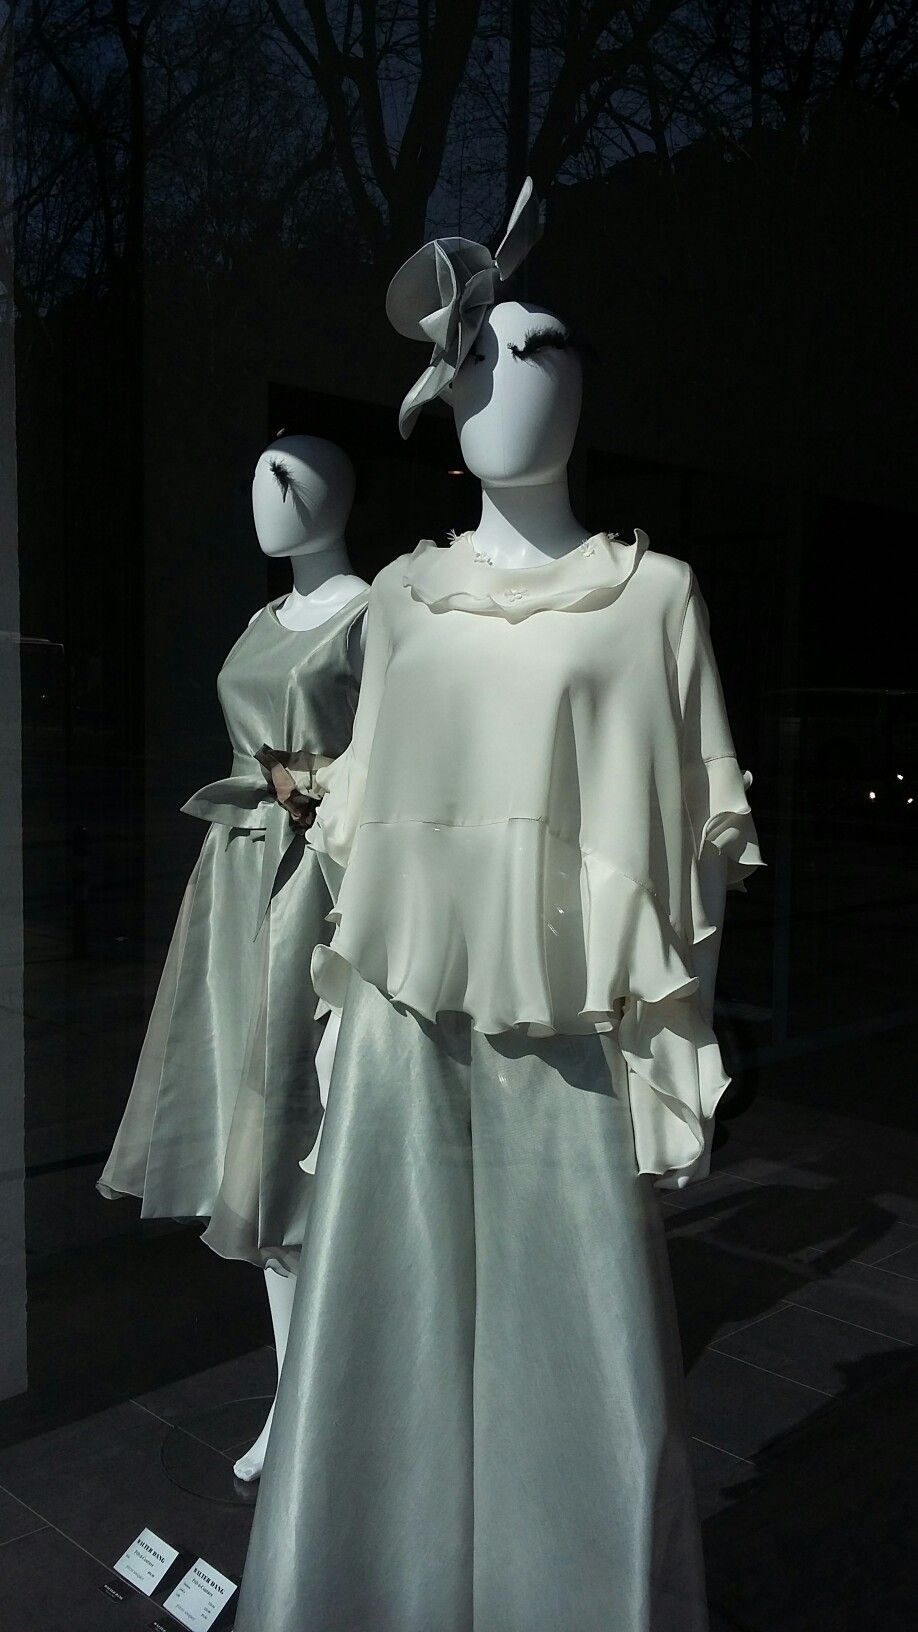 #dresses by Walter Dang, #turin